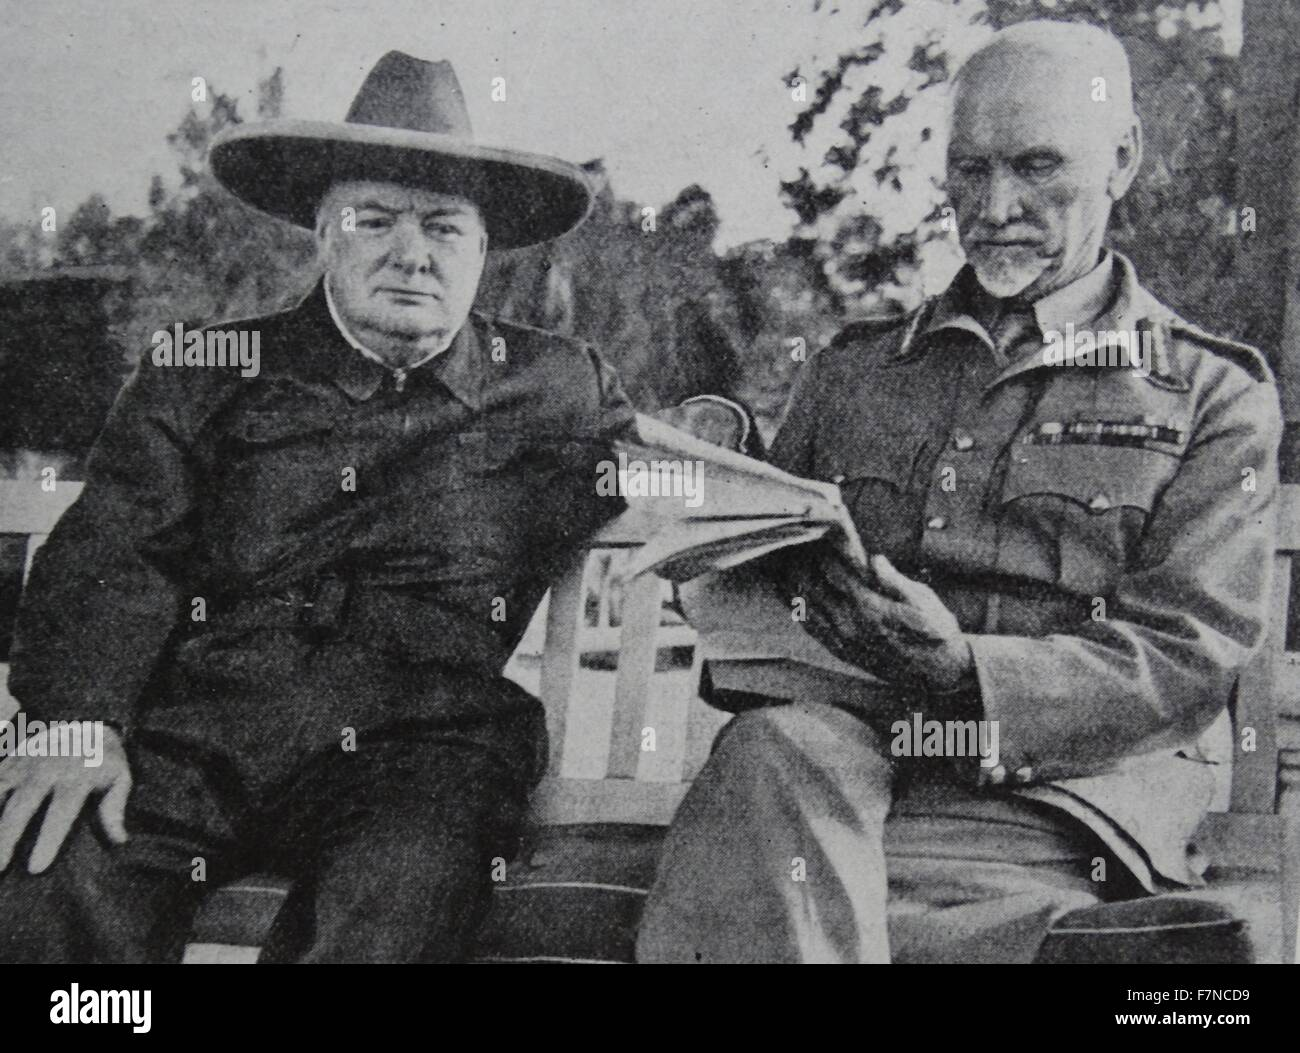 Winston Churchill (1874-1965) Prime Minister of the United Kingdom from 1940-1945 and again 1951-1955 with Jan Christiaan - Stock Image